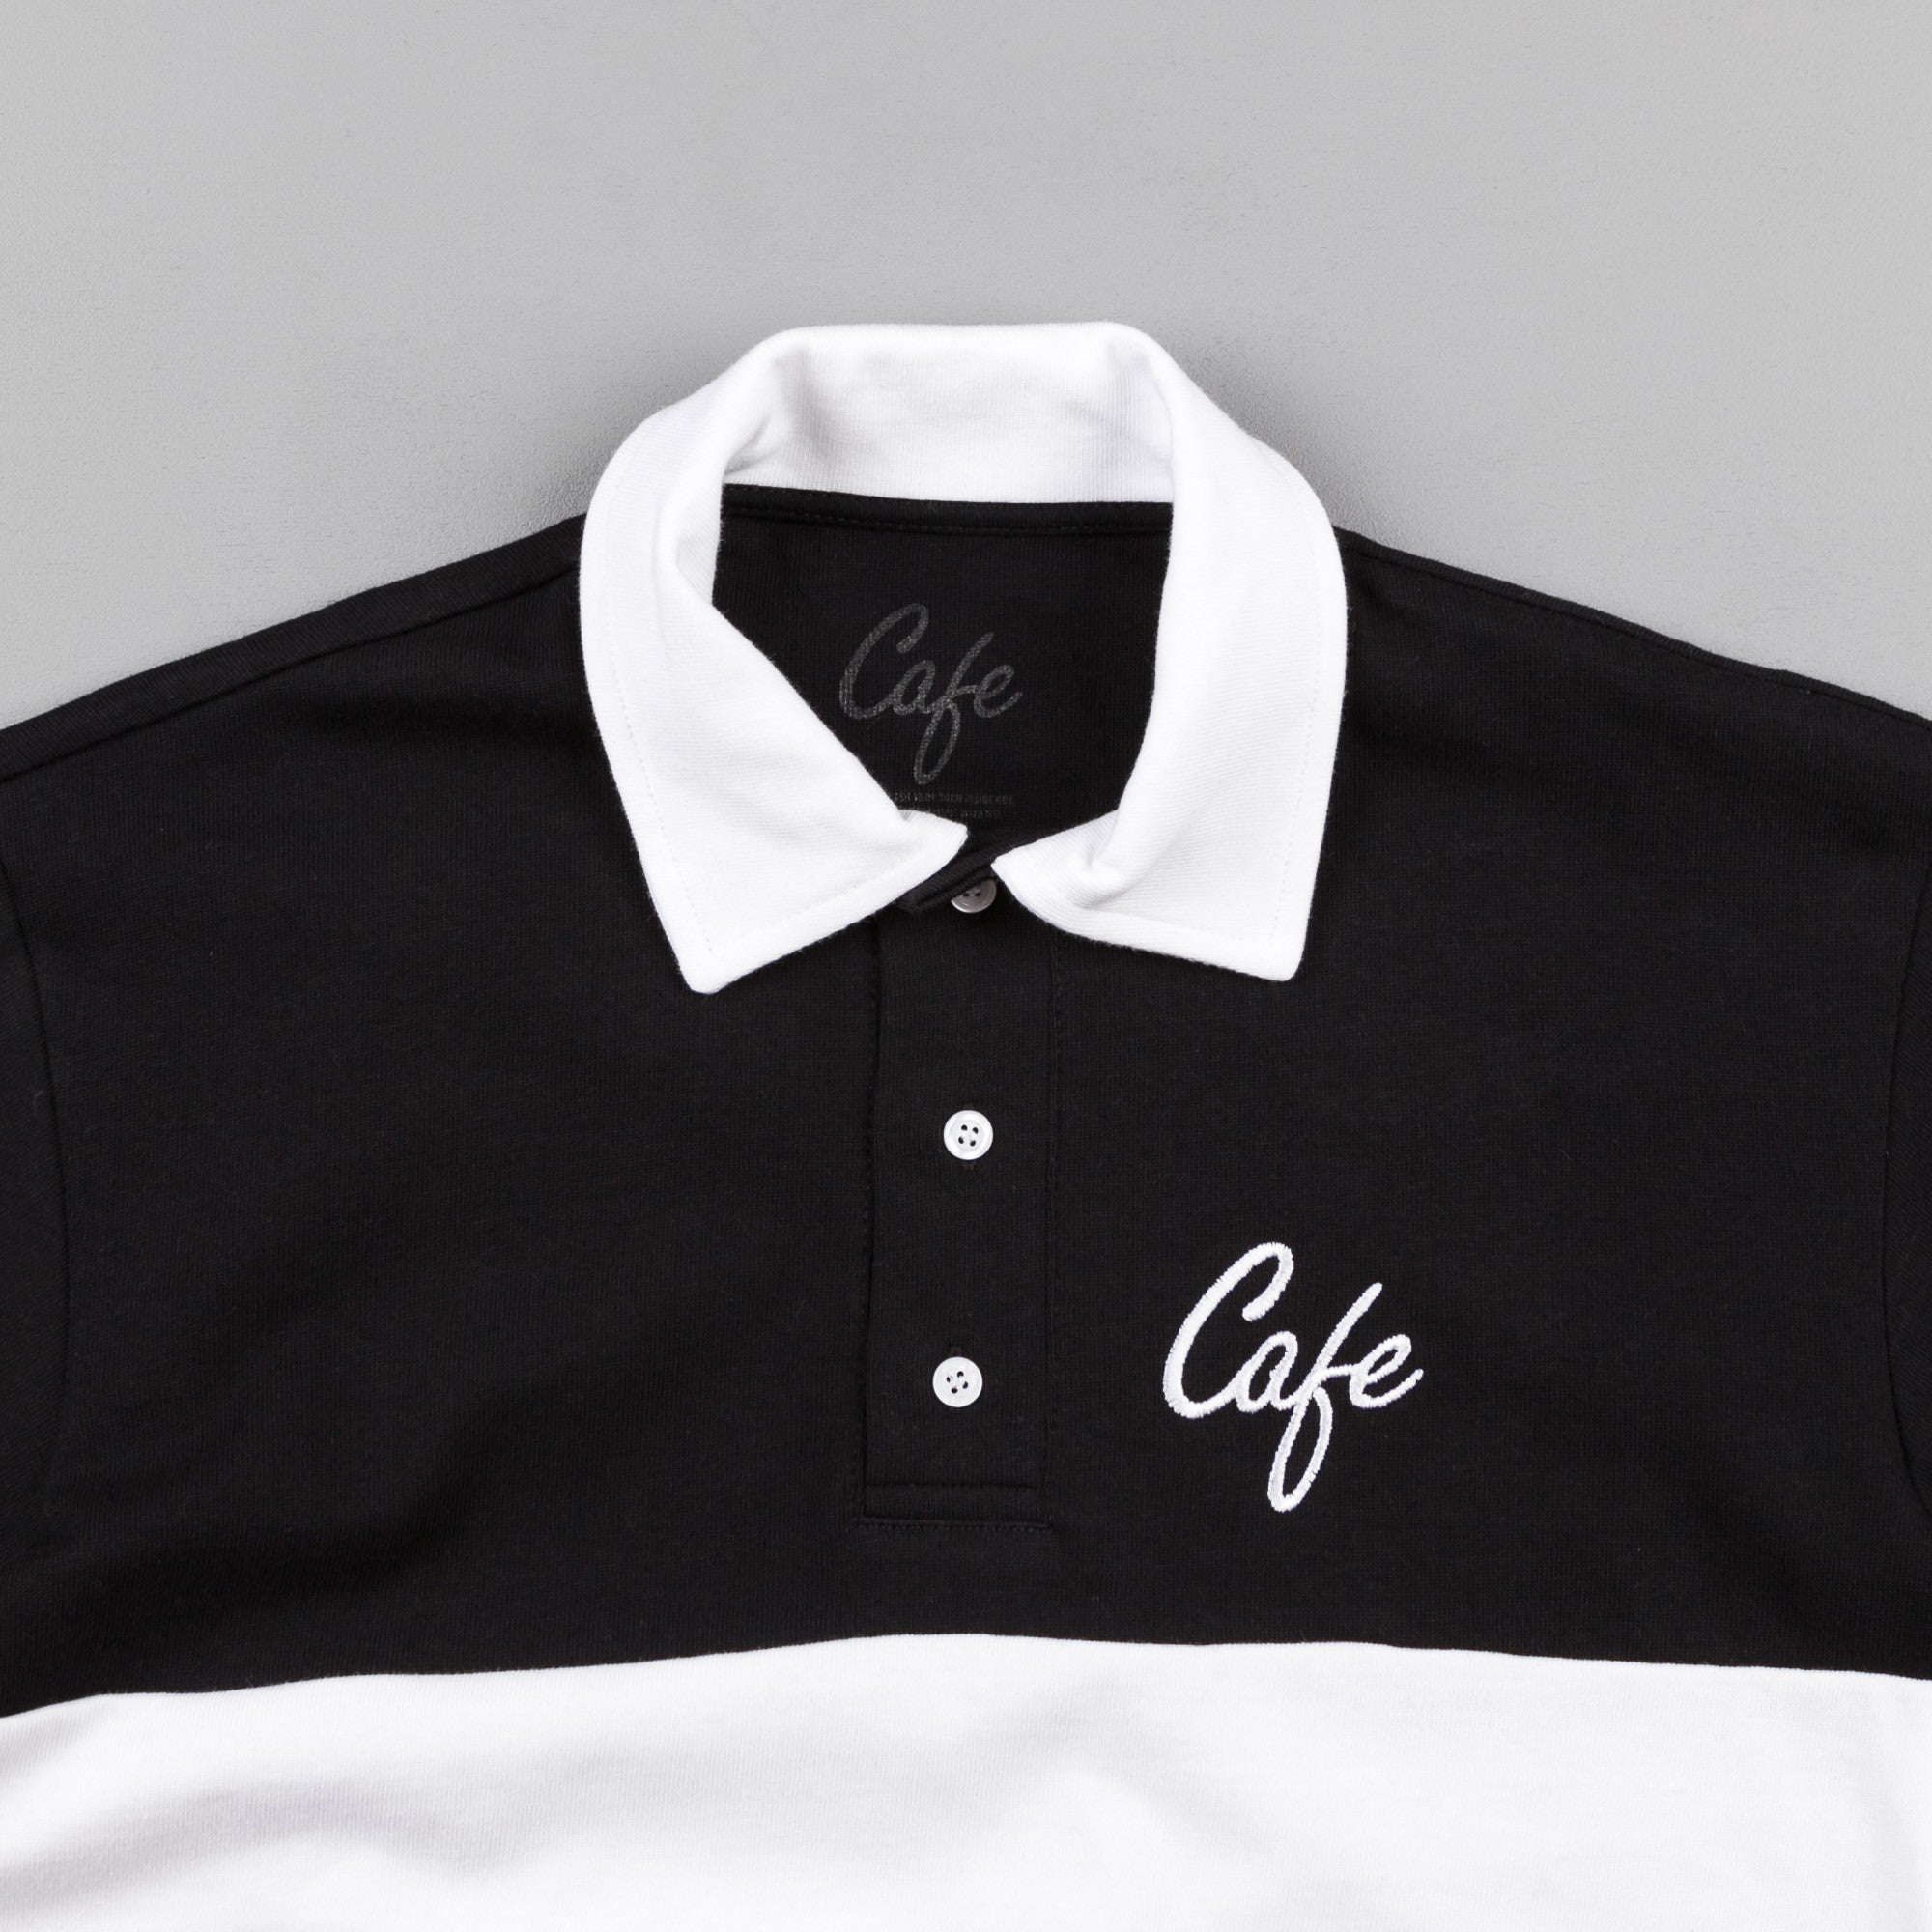 Skateboard Cafe Script Long Sleeve Polo Shirt - Black / White